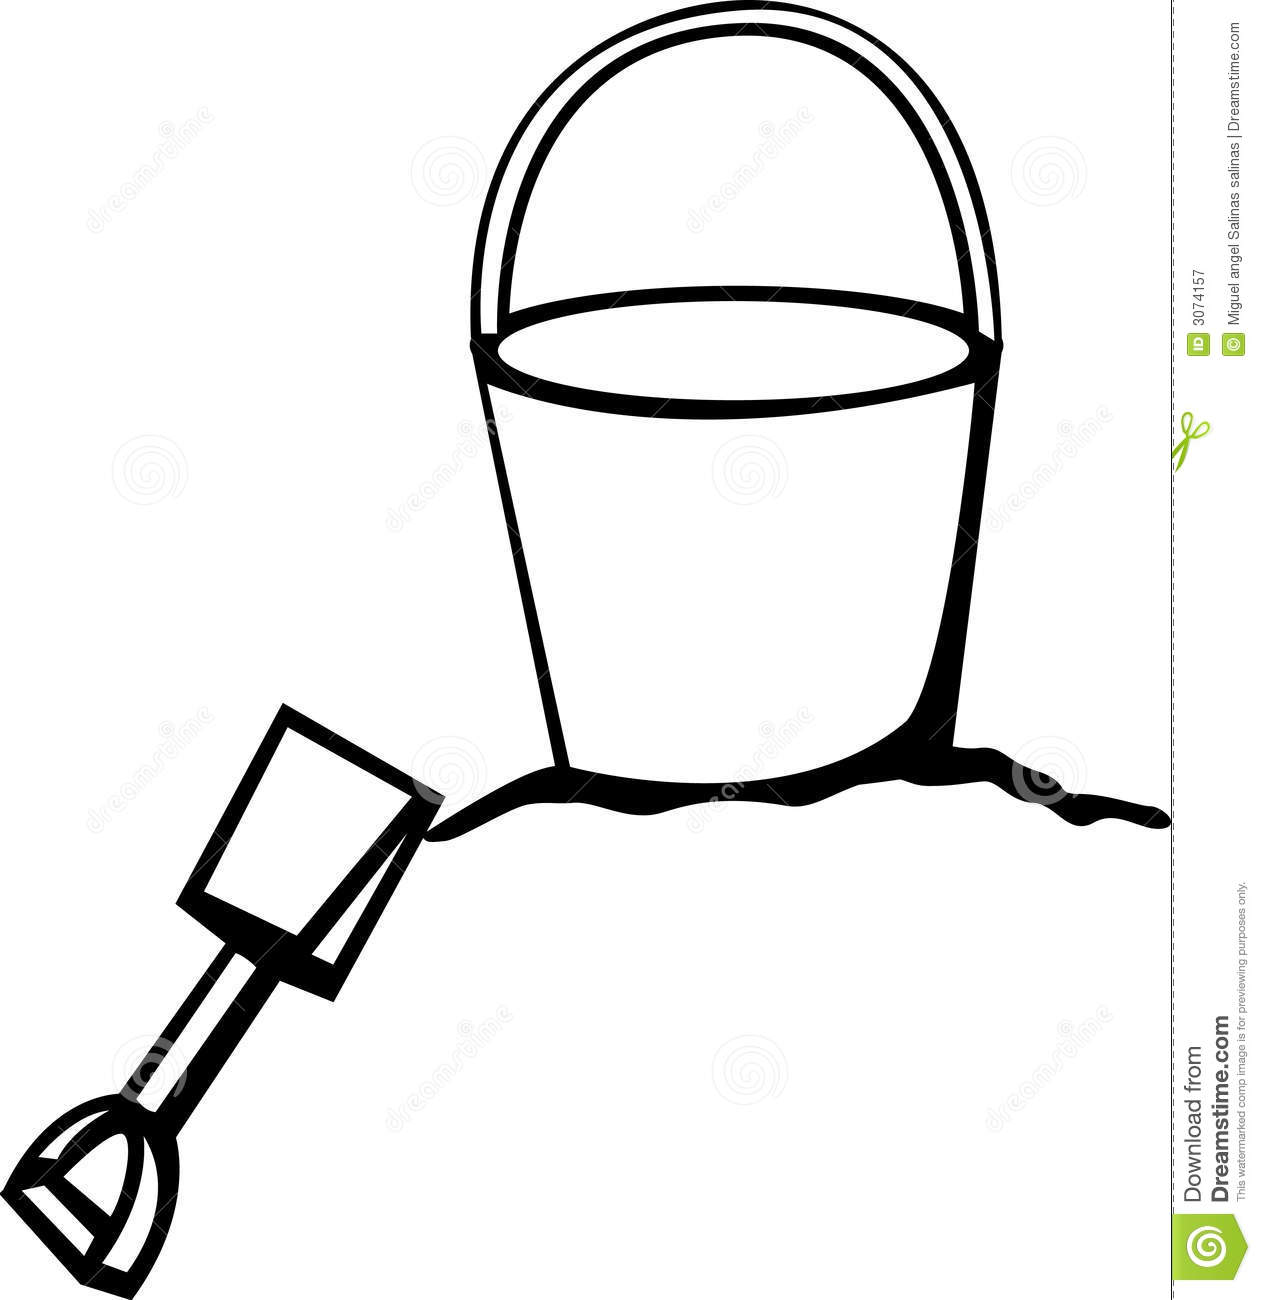 Free clipart black and white play minng clipart download Shovel Clipart Black And White | Free download best Shovel Clipart ... clipart download